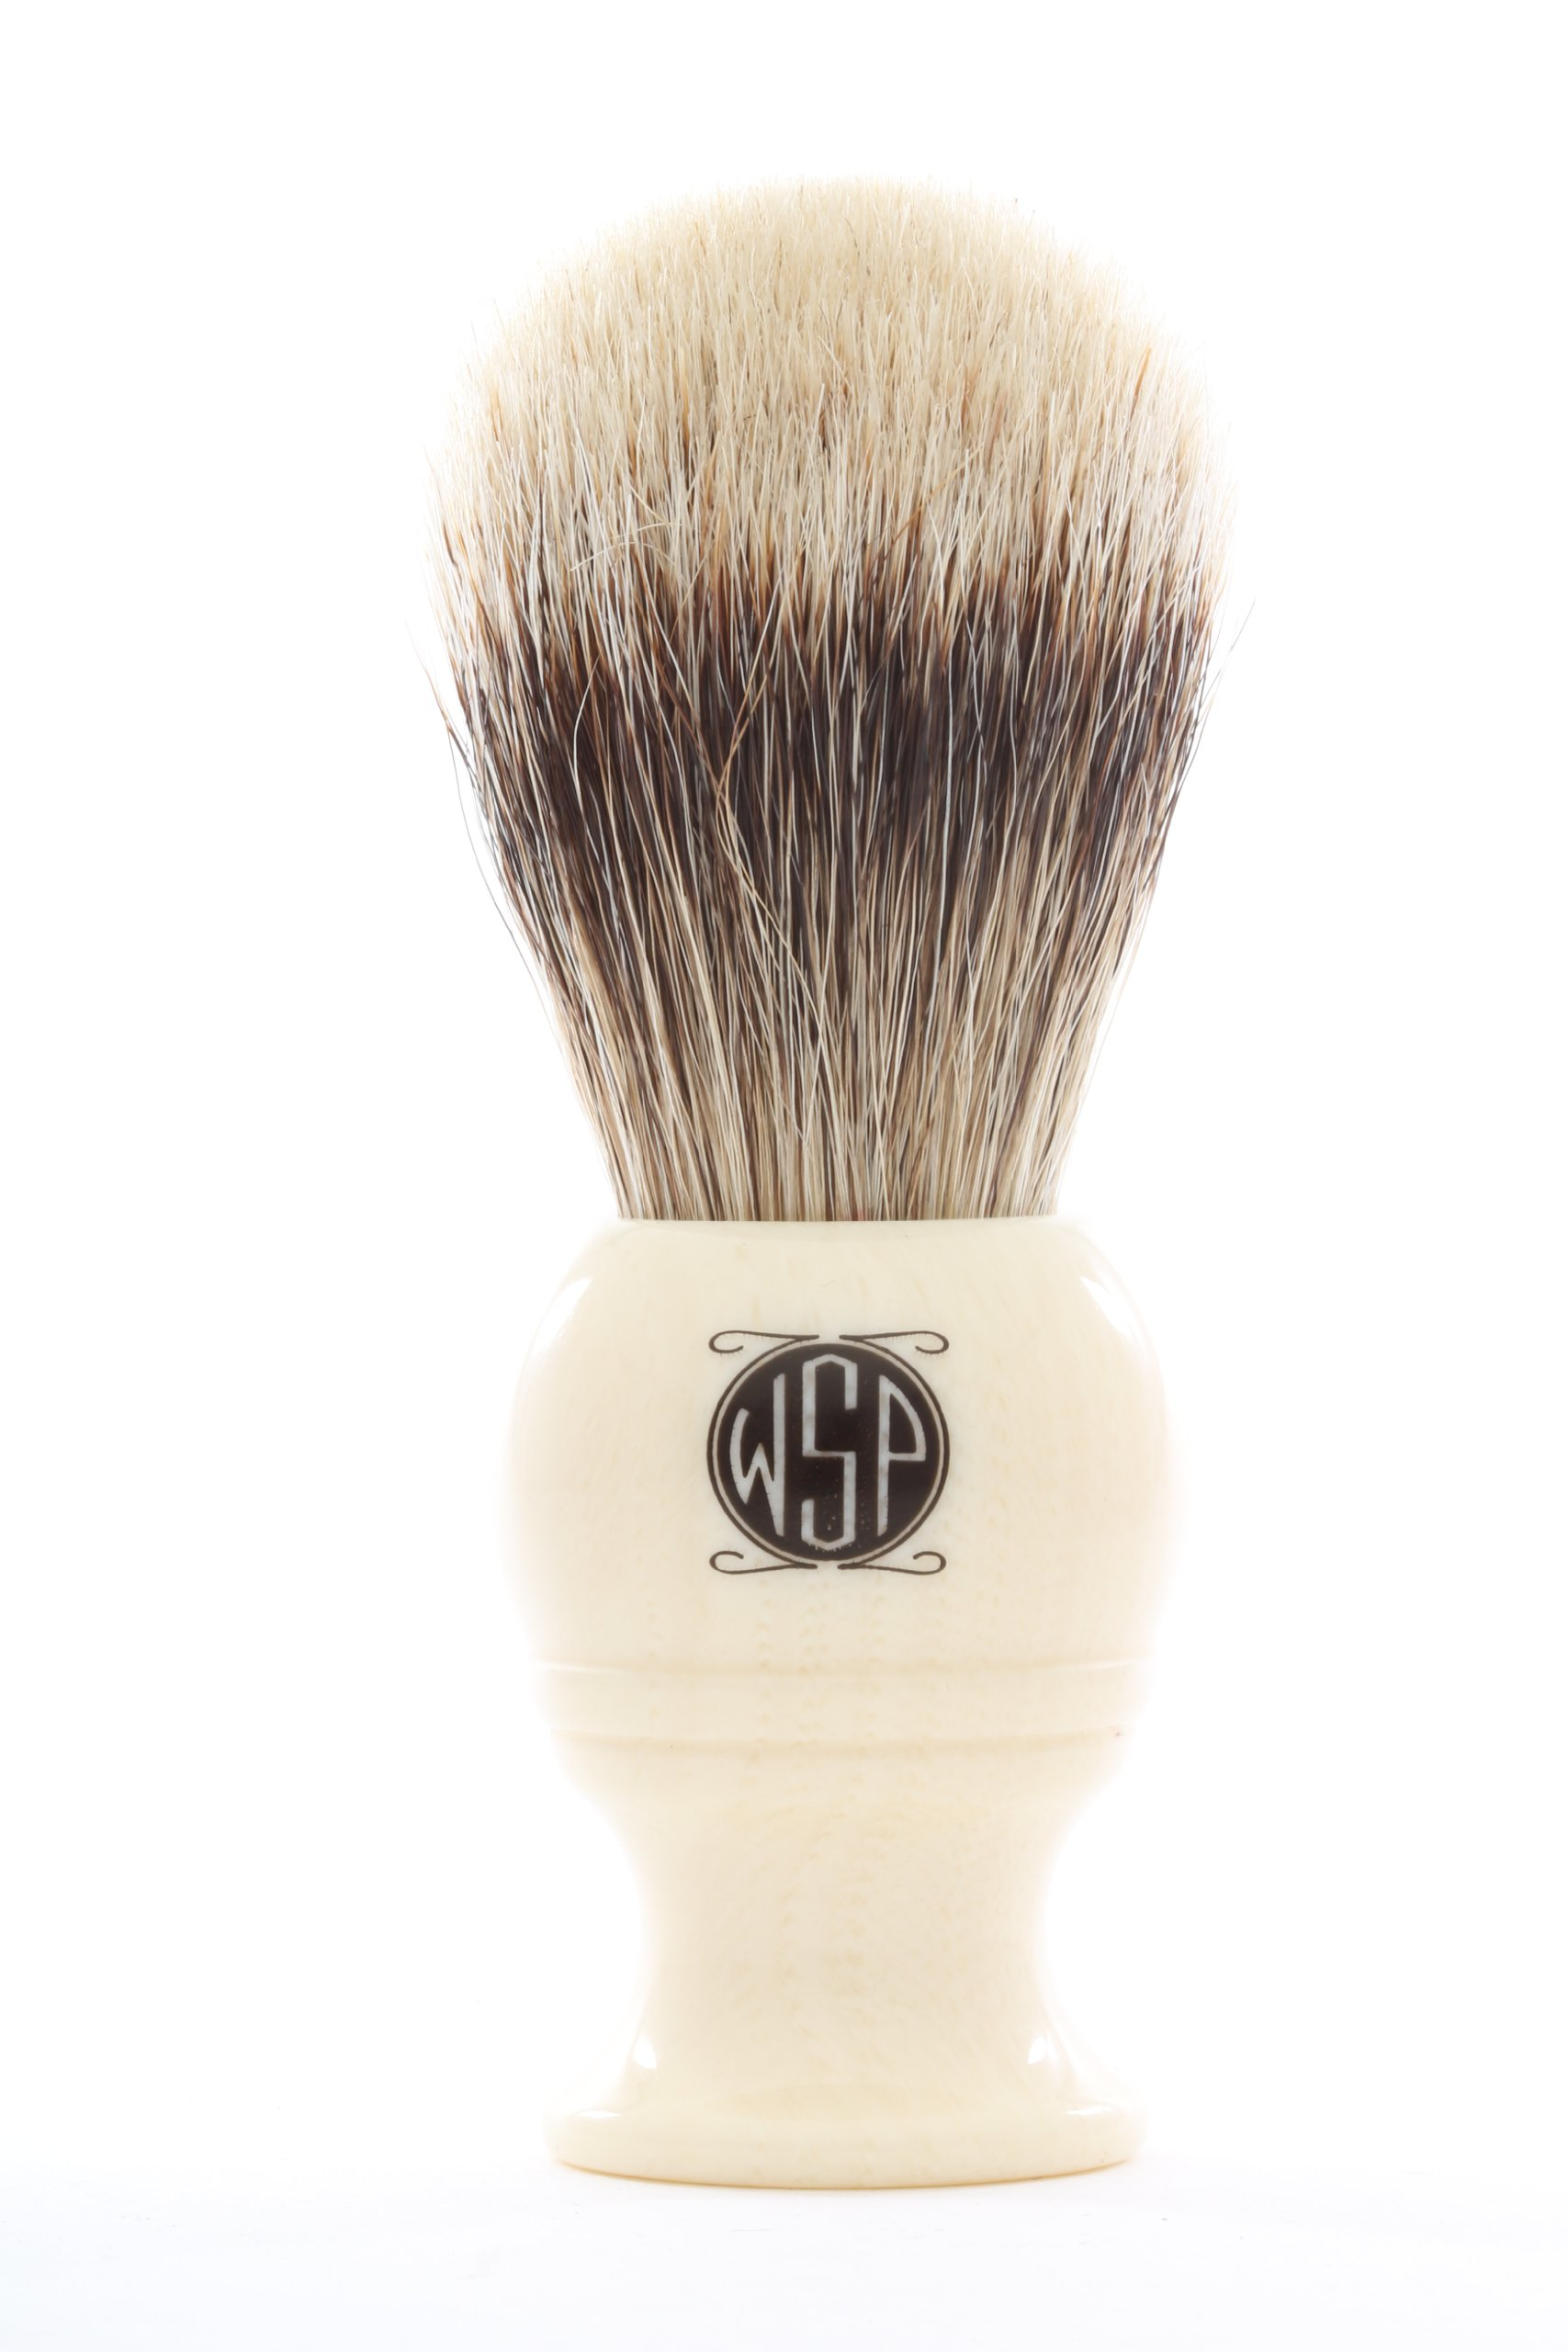 Badger Shaving Brush High Density High Mountain White Silvertip WSP ''Monarch'' (Ivory) by Wet Shaving Products